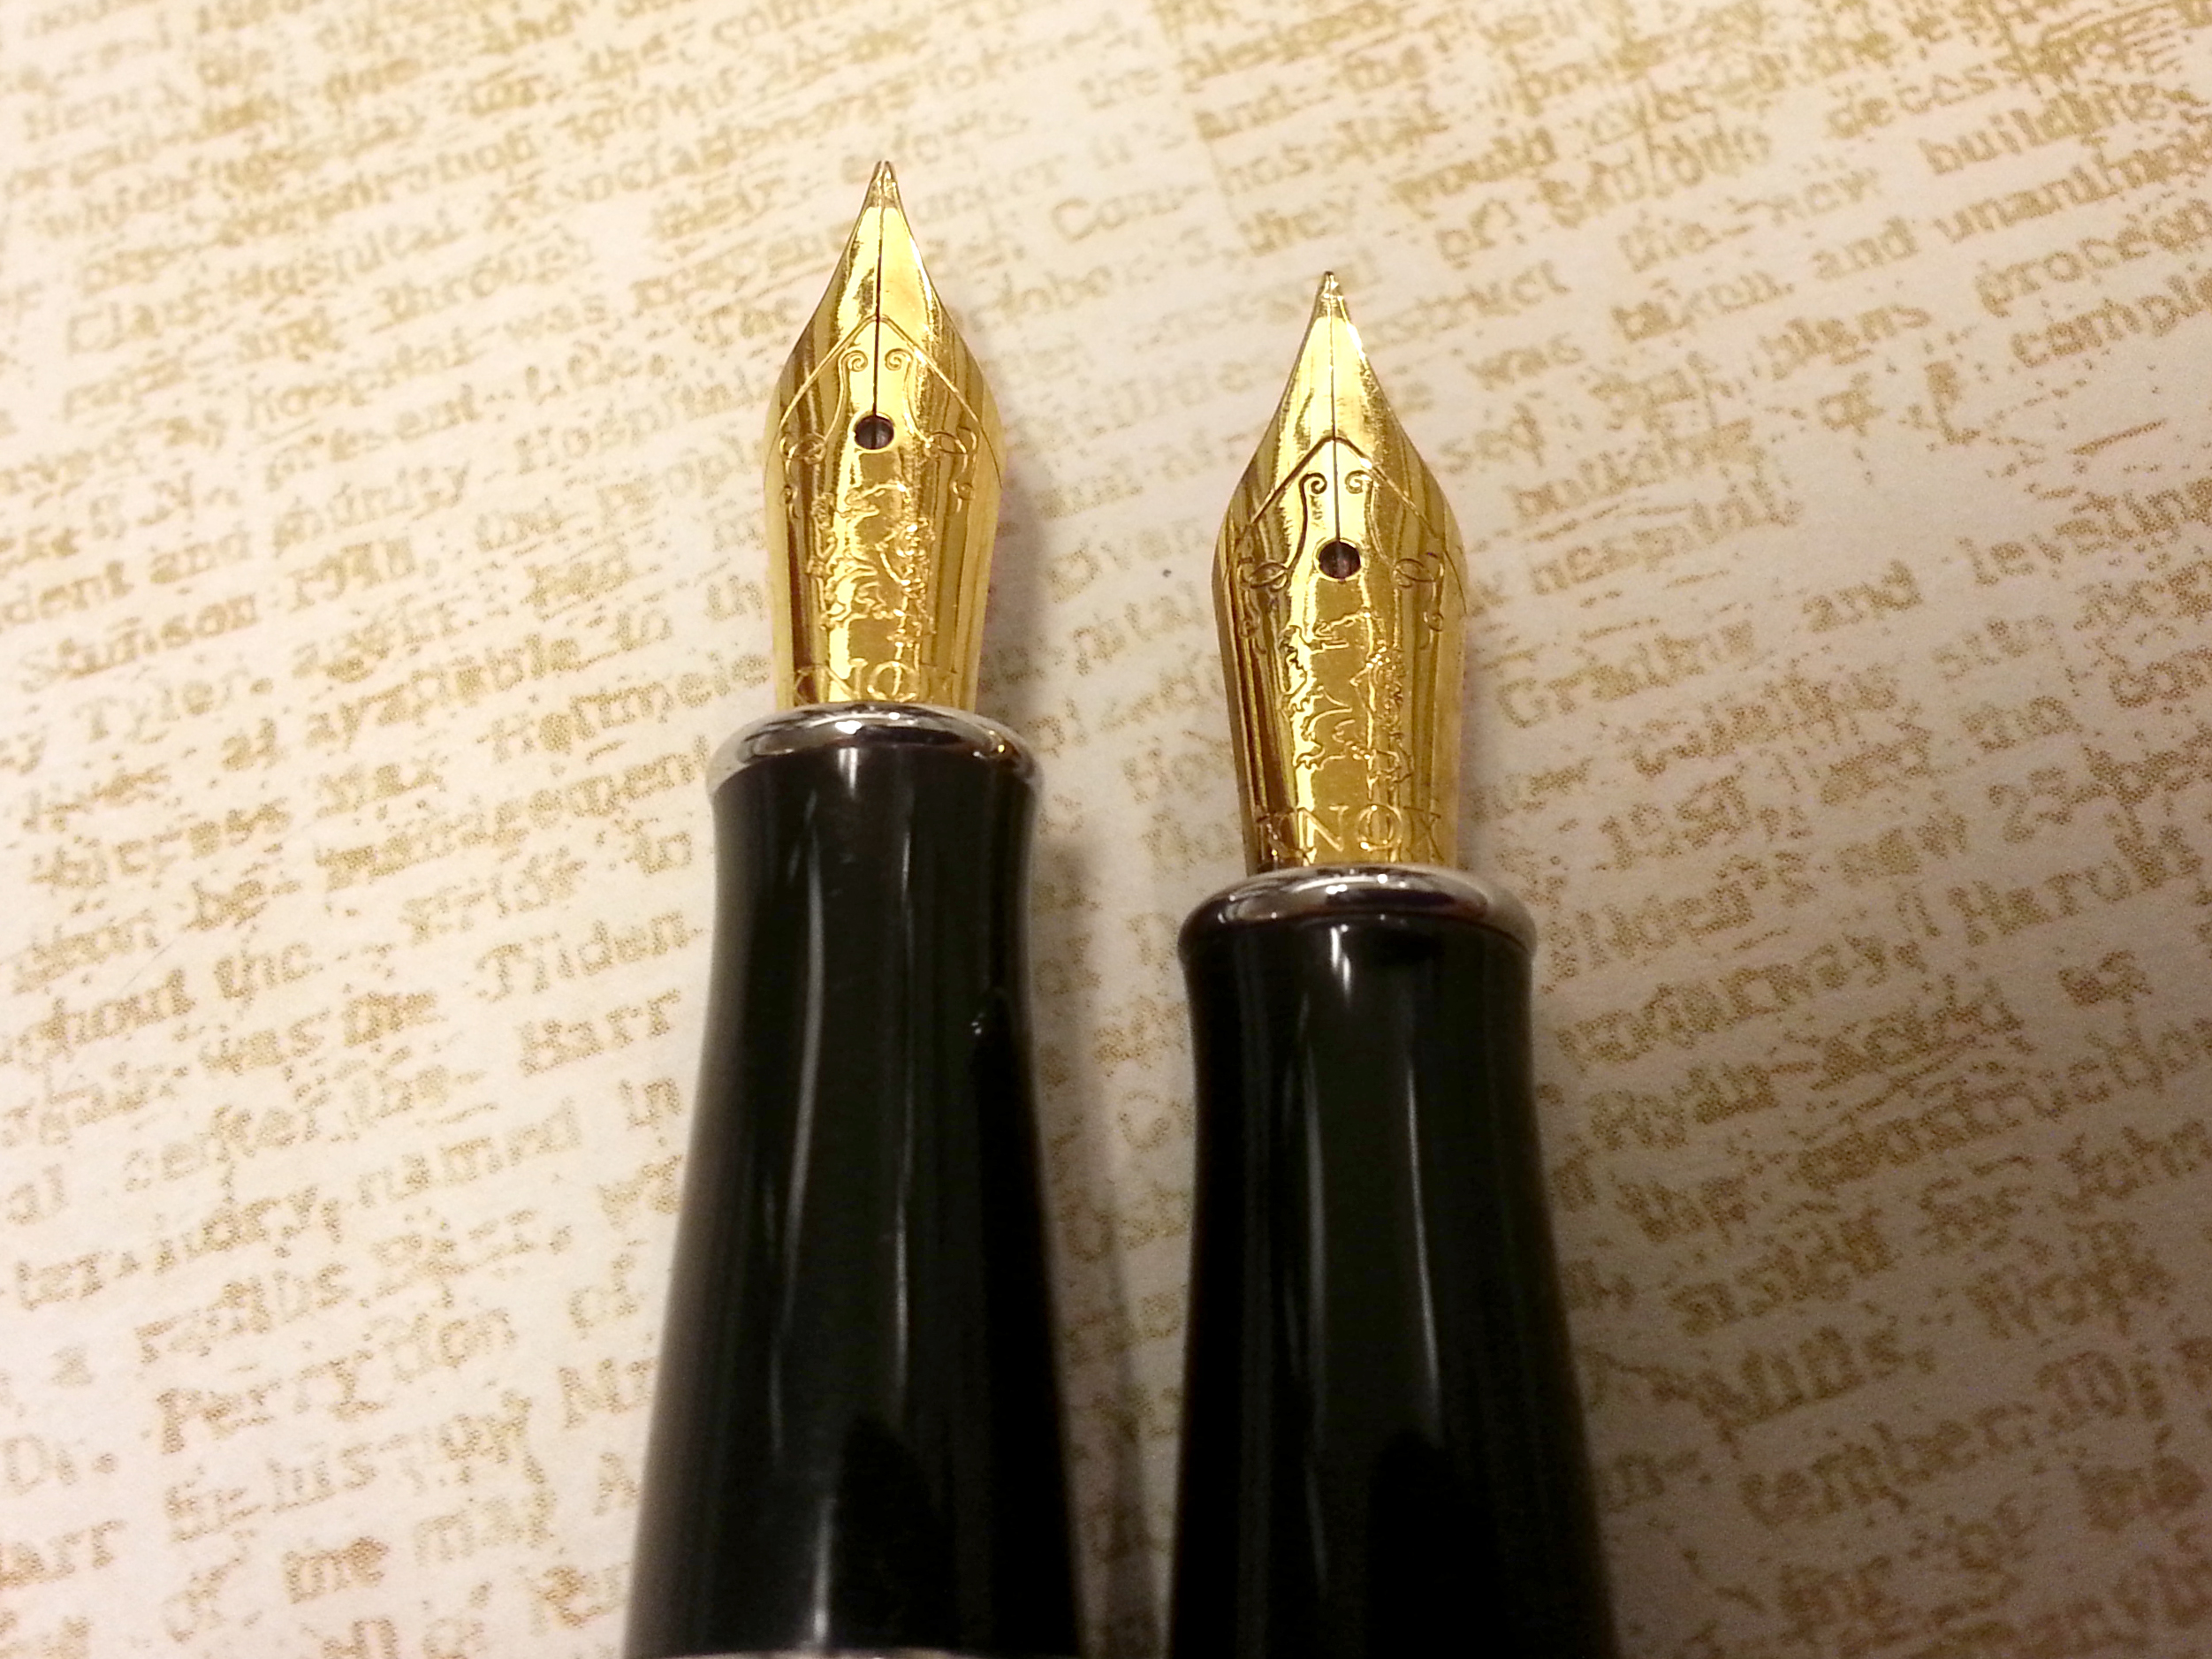 Knox Galileo Fountain Pen Nibs (Extra Fine)